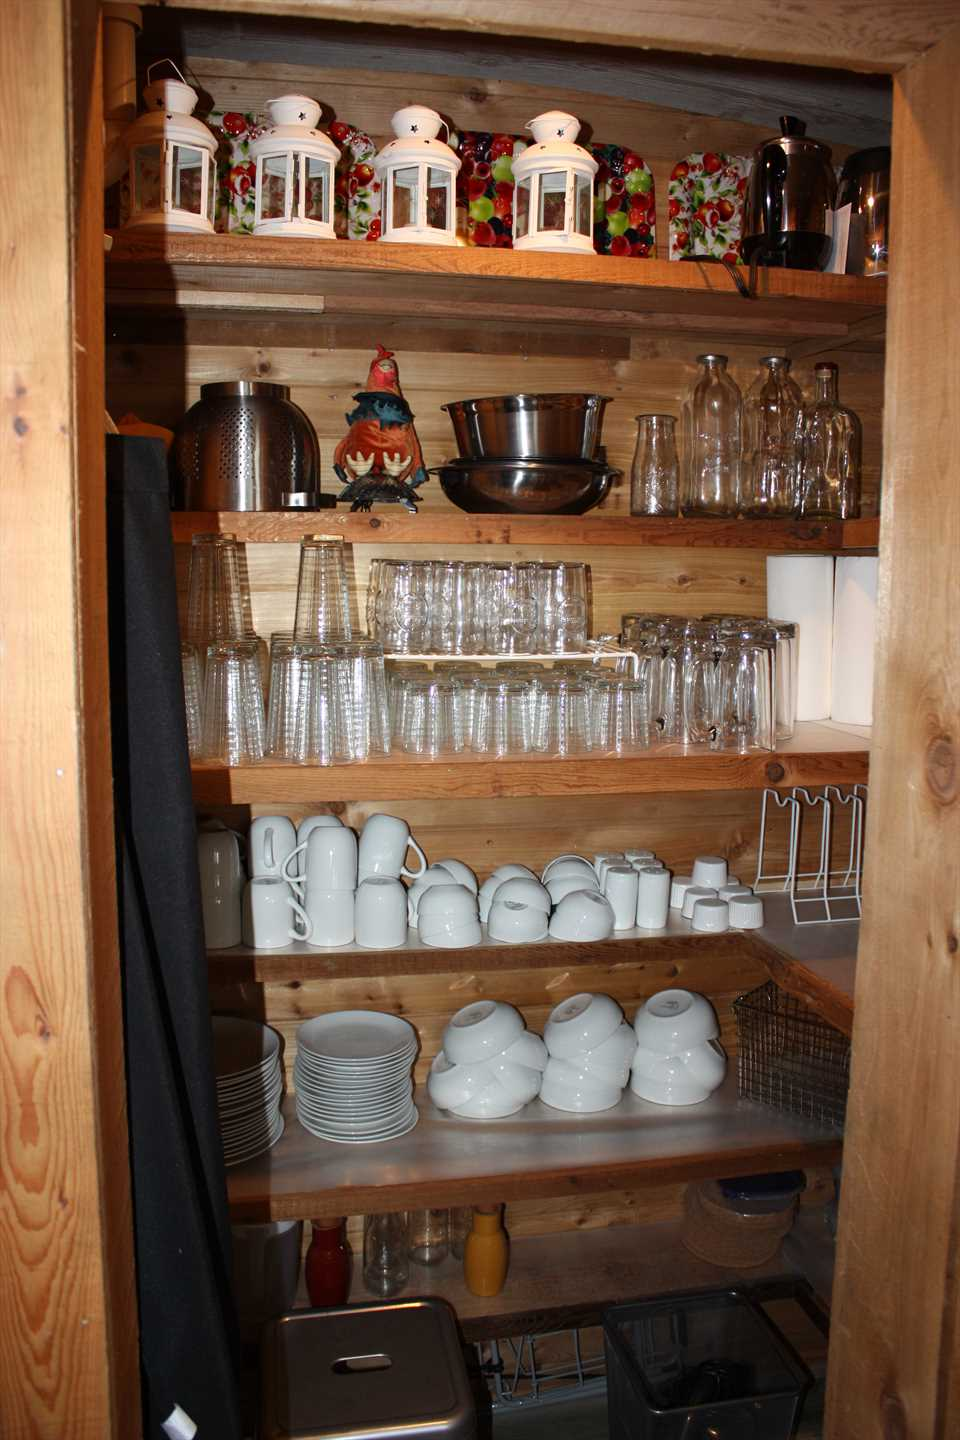 Putting on a big feed? All the utensils, cookware, glasses, and serving ware you could possibly need are all here!